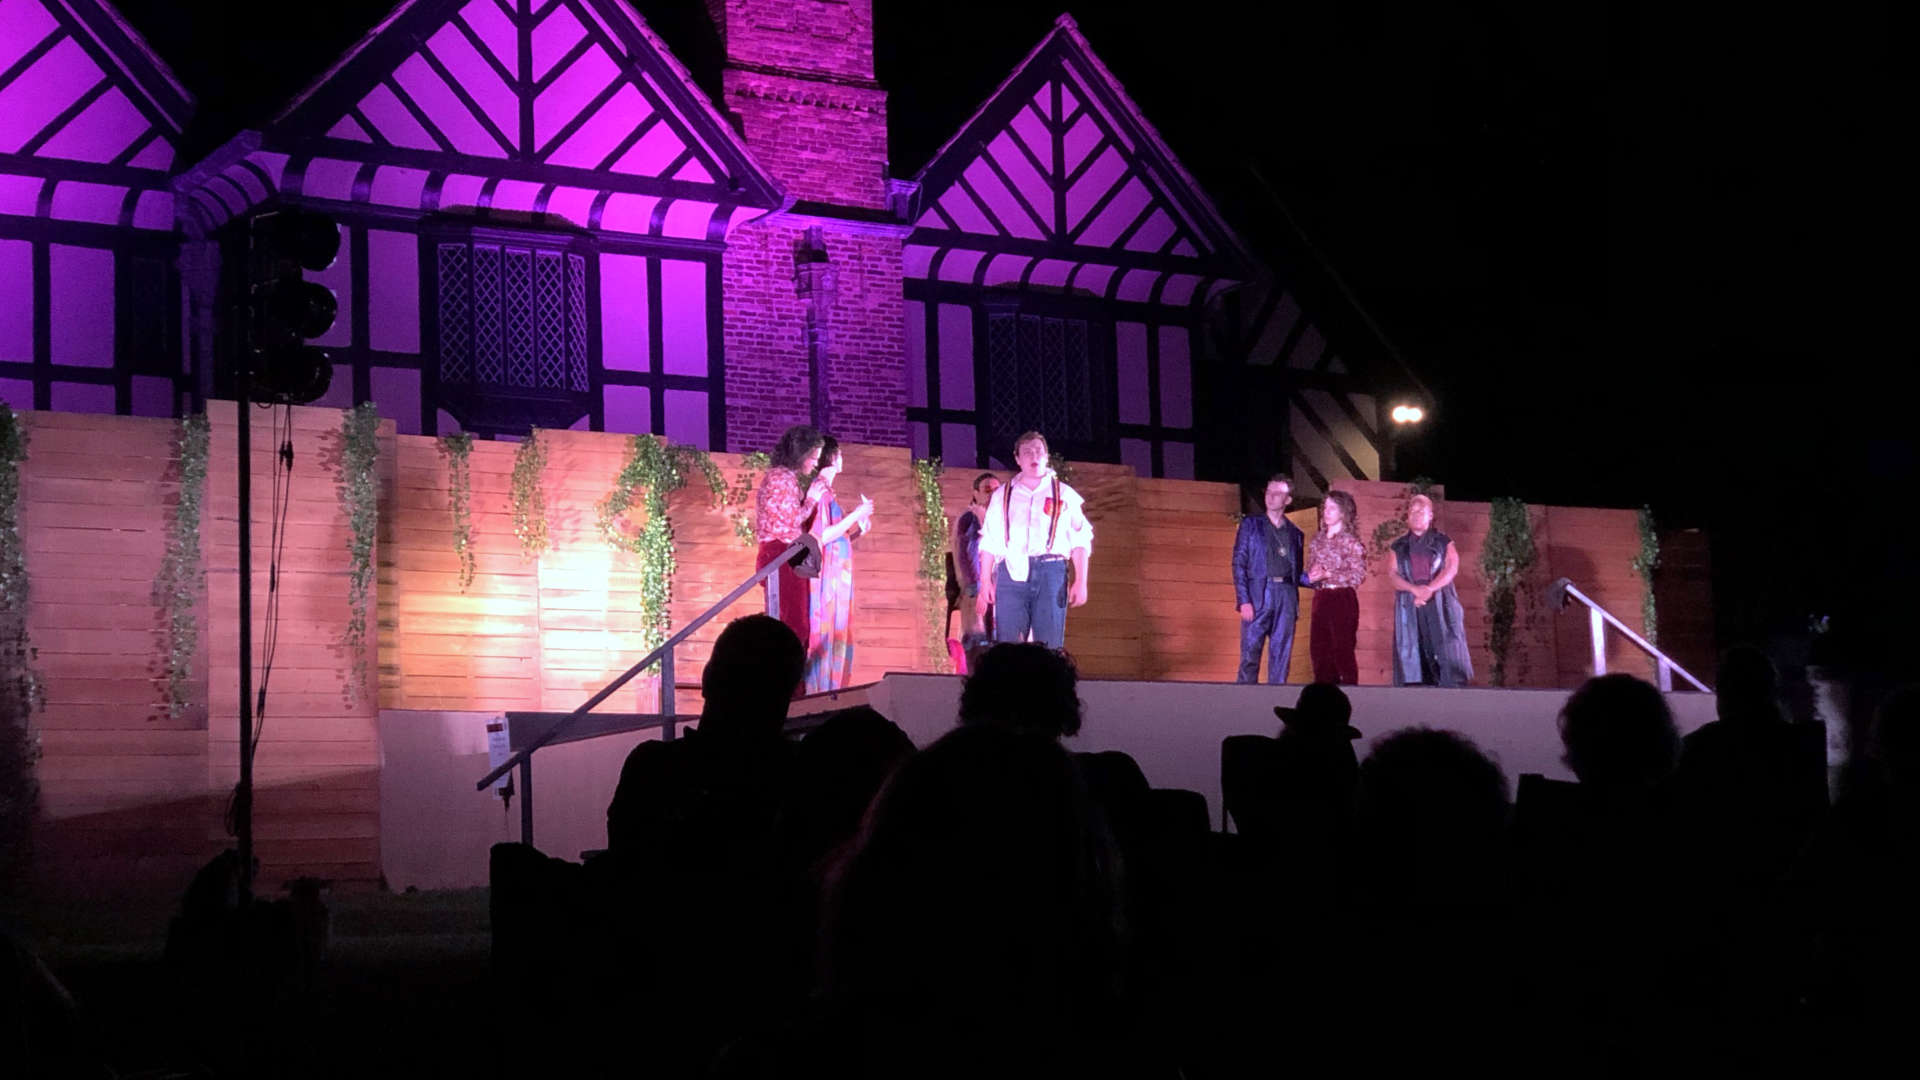 What a way to enjoy Shakespeare: outside under the stars and adjacent to a historic English Tudor manor!